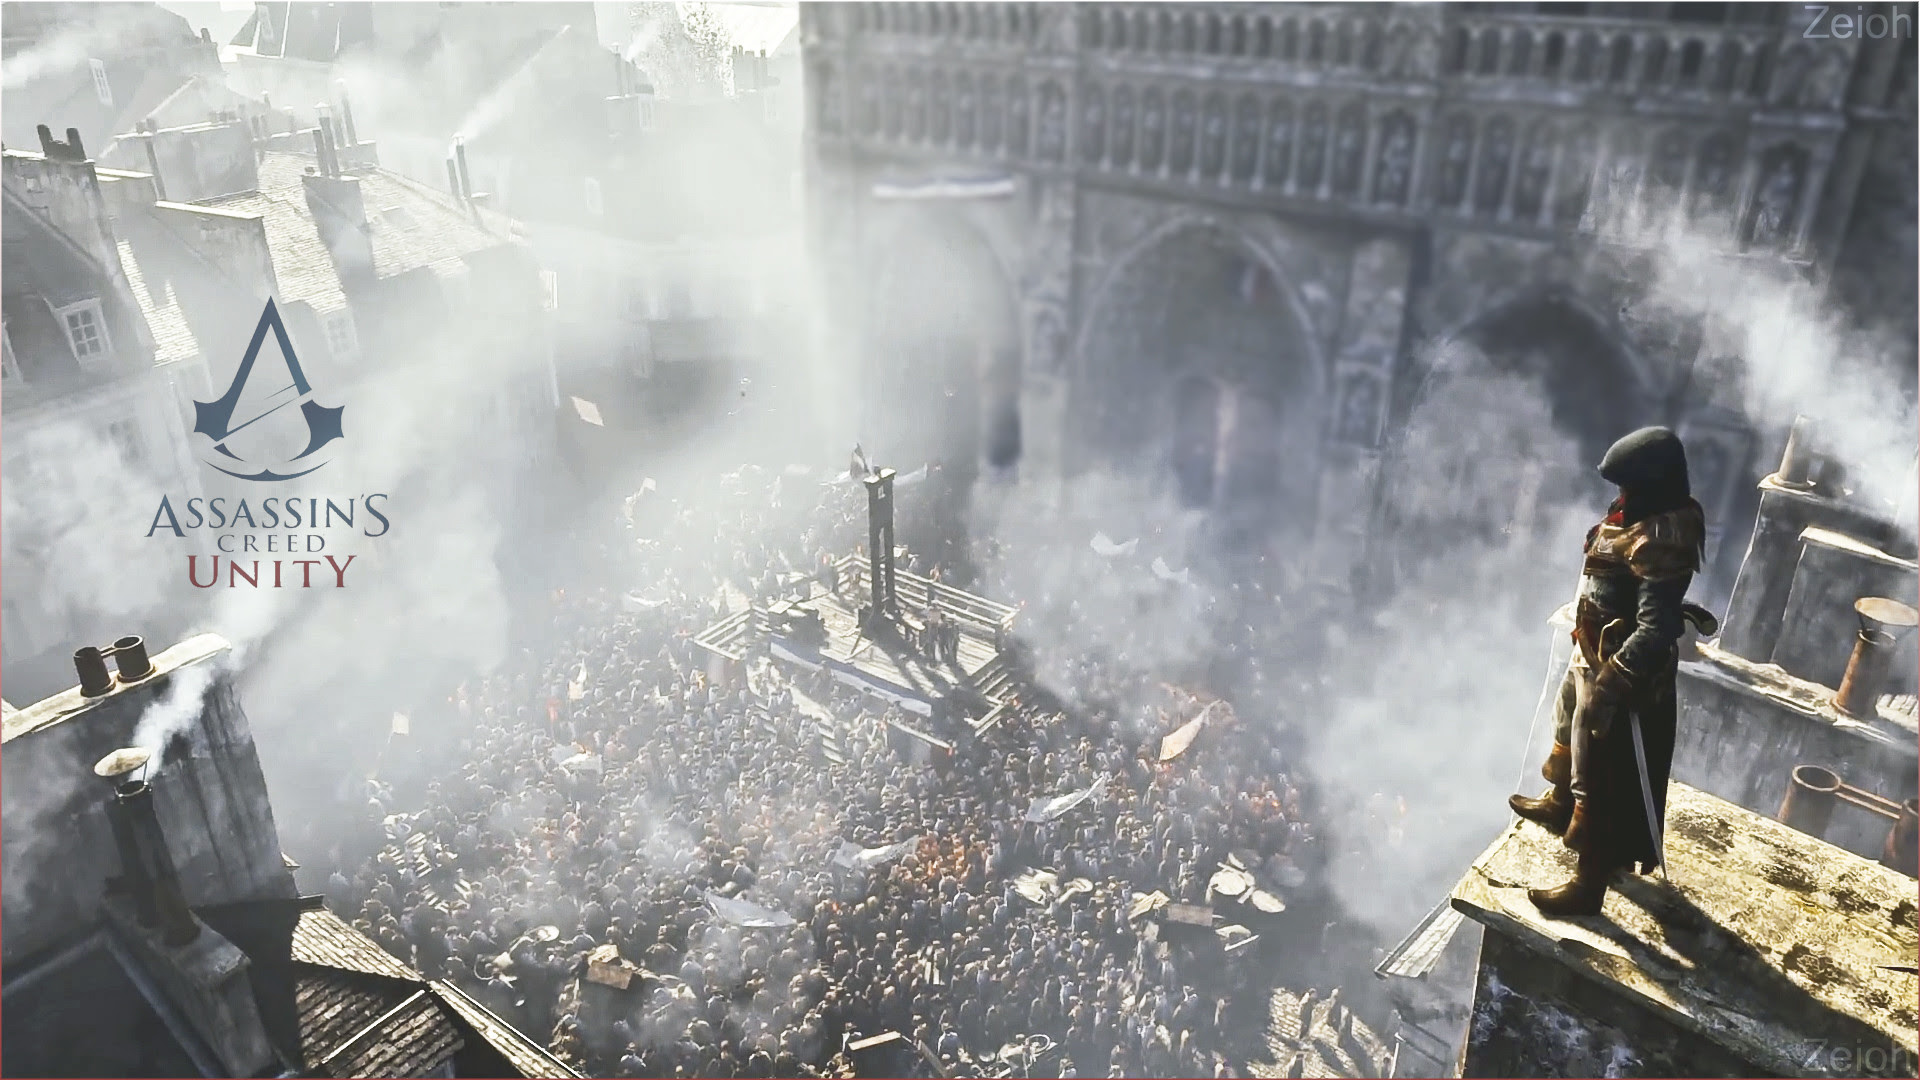 Assassins Creed Unity Wallpapers 83 Images